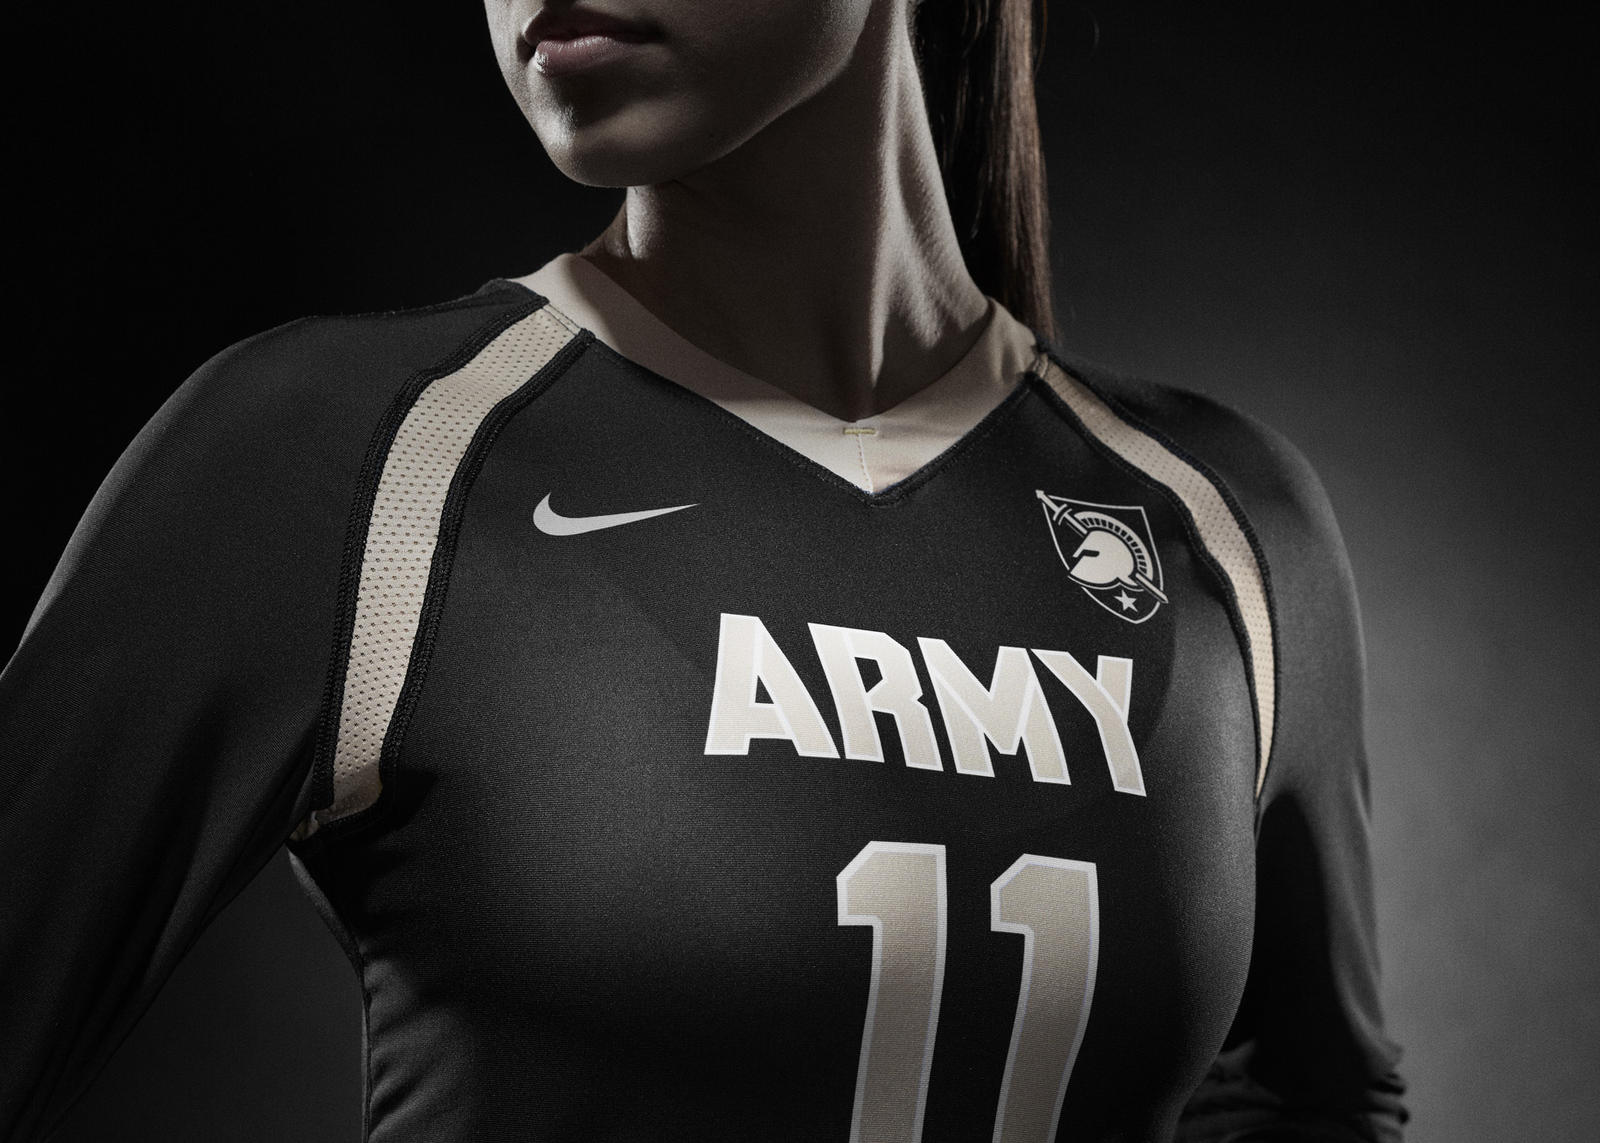 Nike_Army_volleyball1